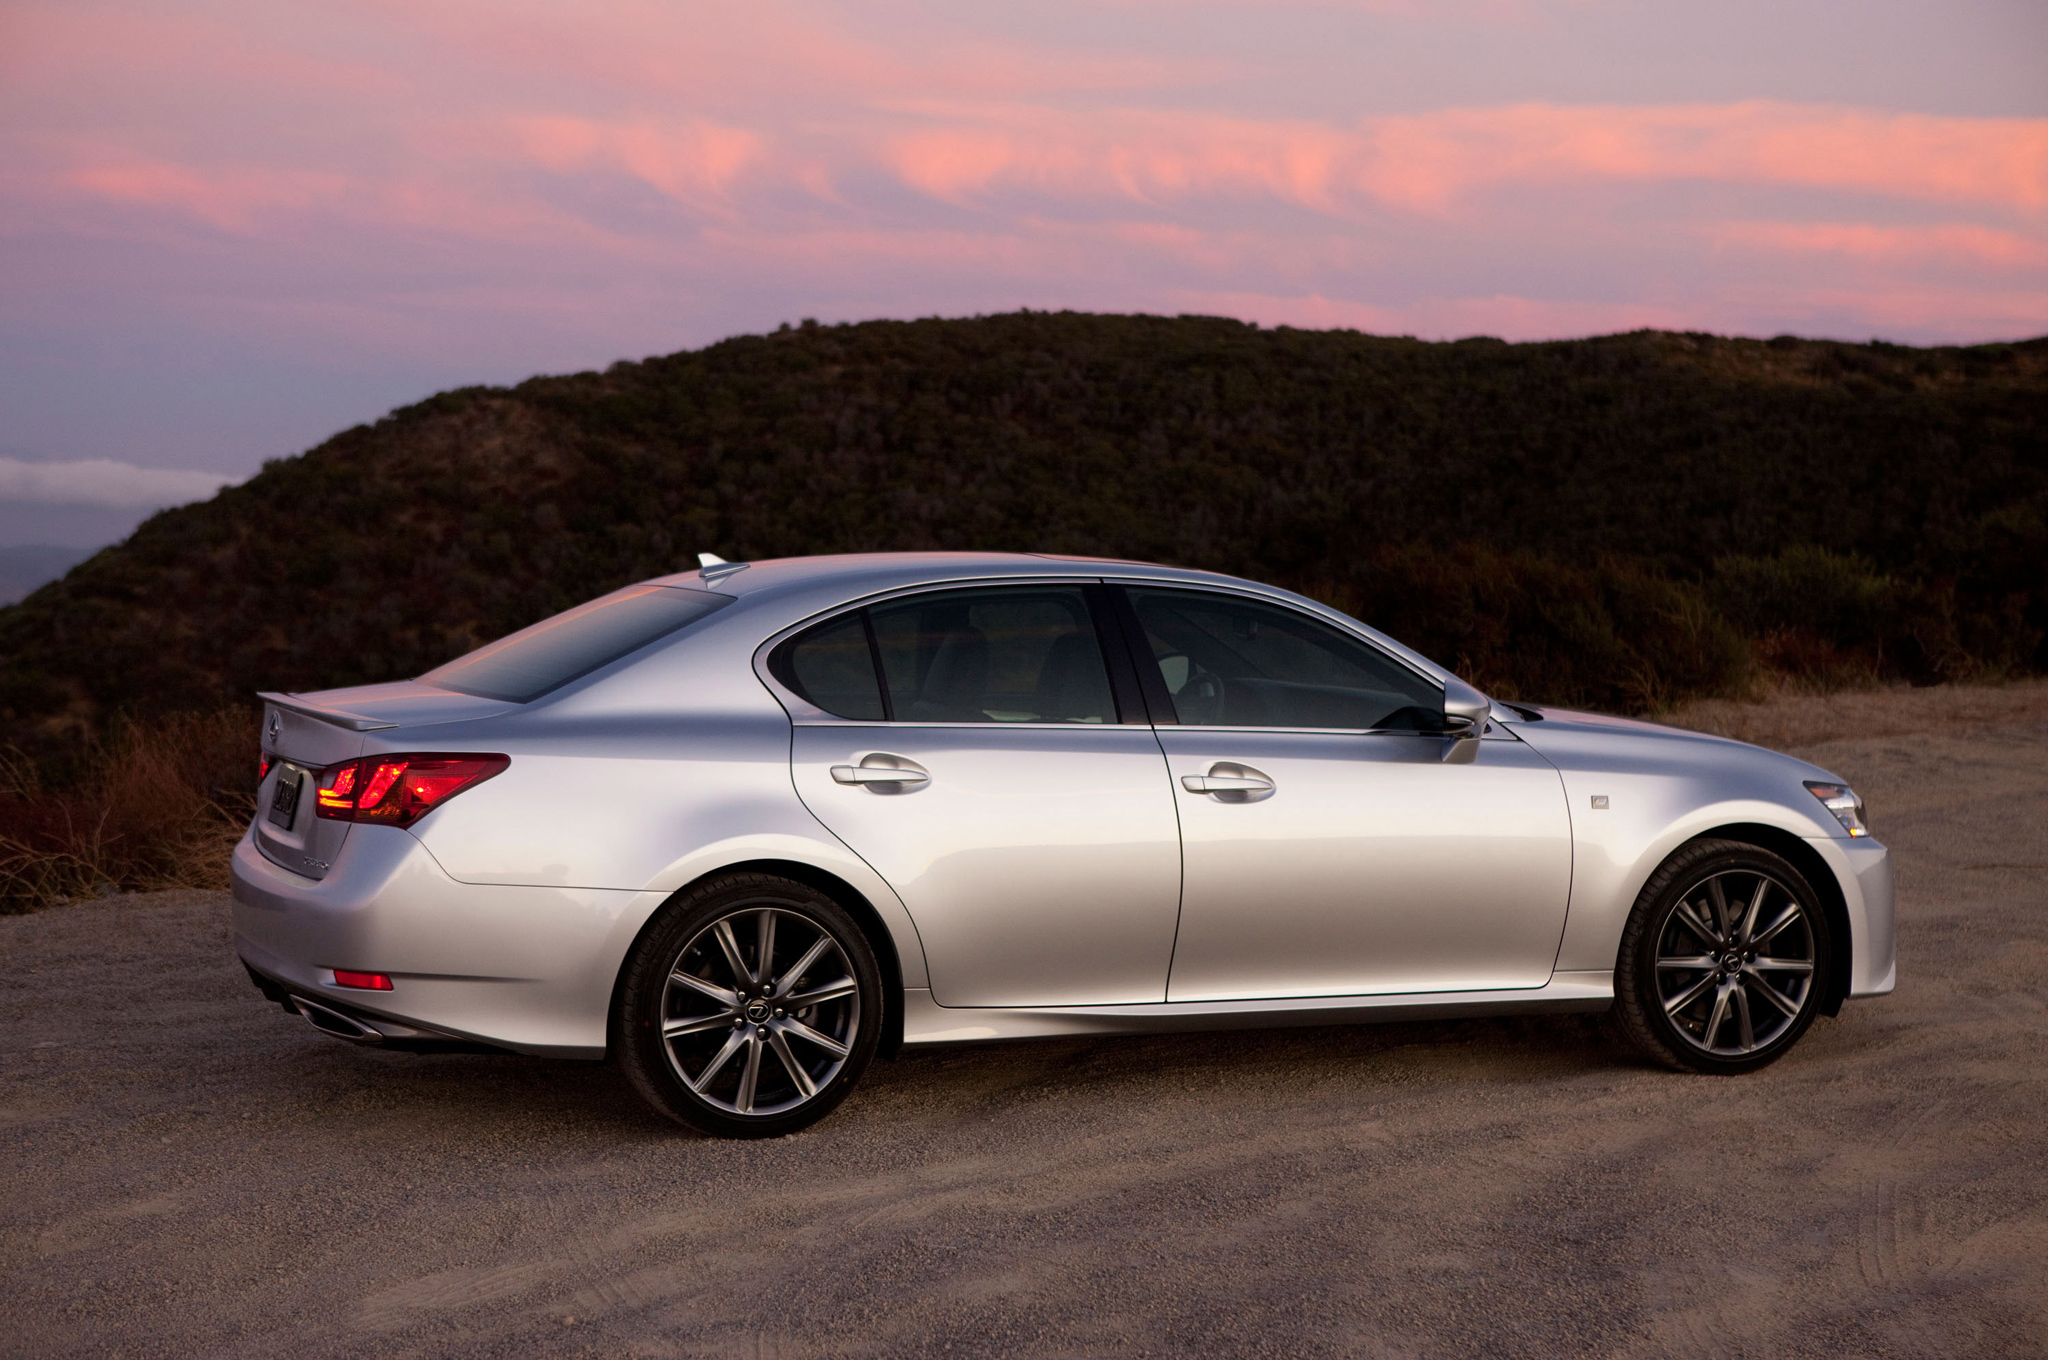 2014 Lexus GS 450h Information and photos ZombieDrive